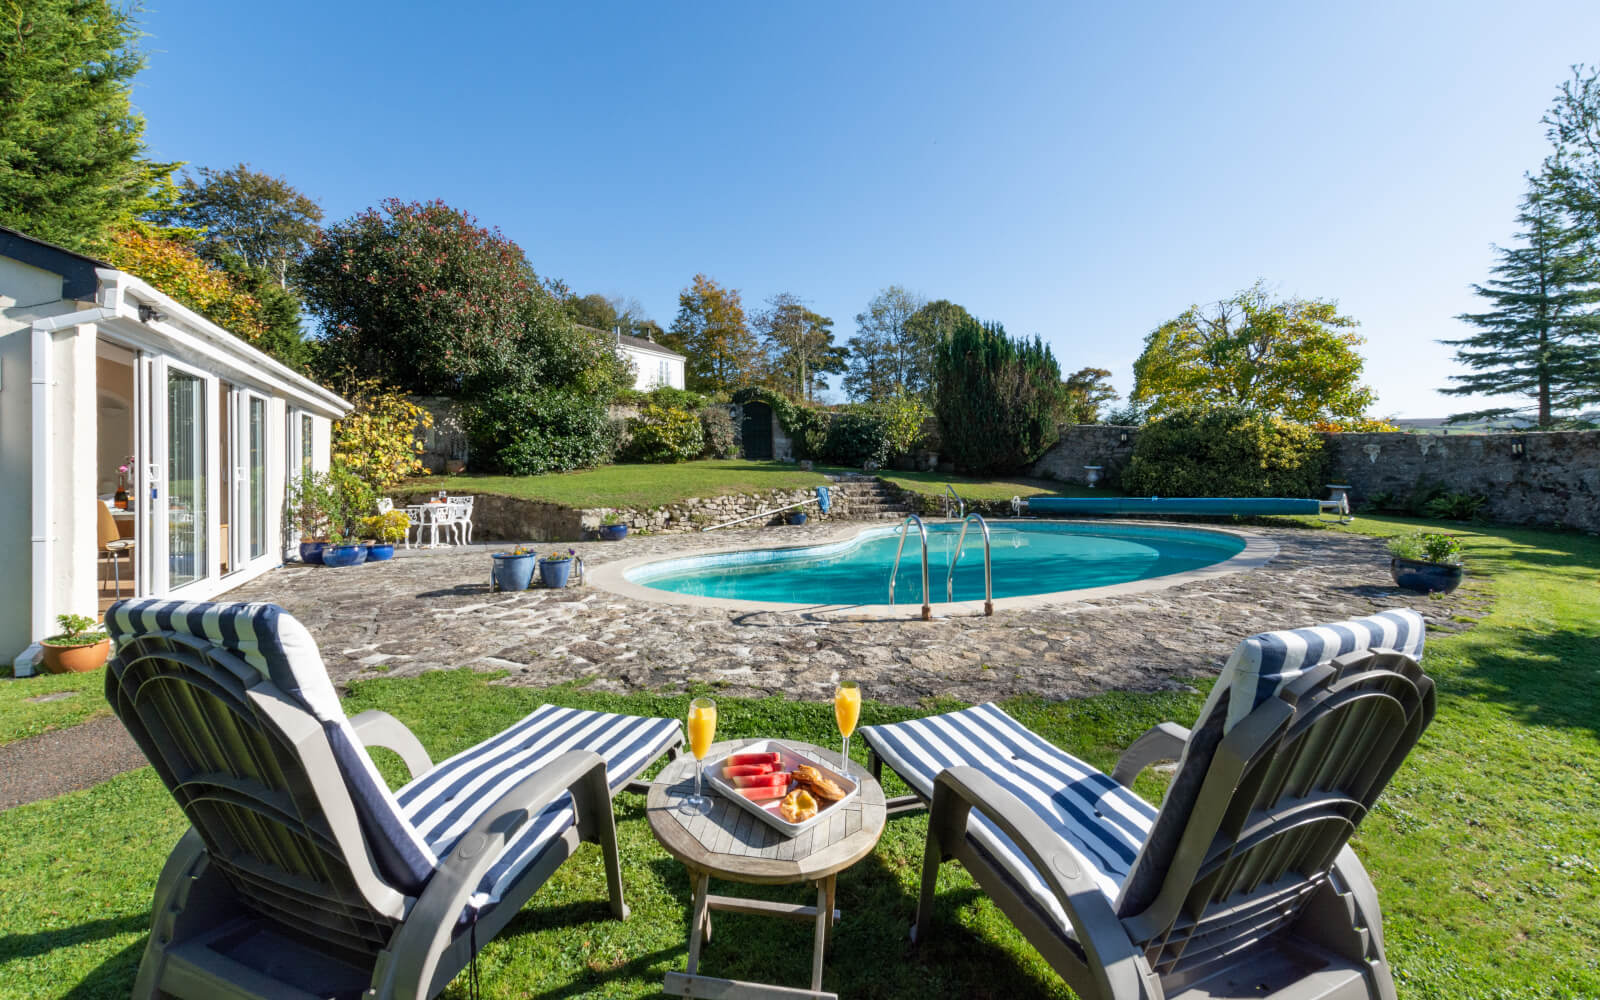 Holiday Cottages With Swimming Pools In West Meon To Rent - Save up to 60%